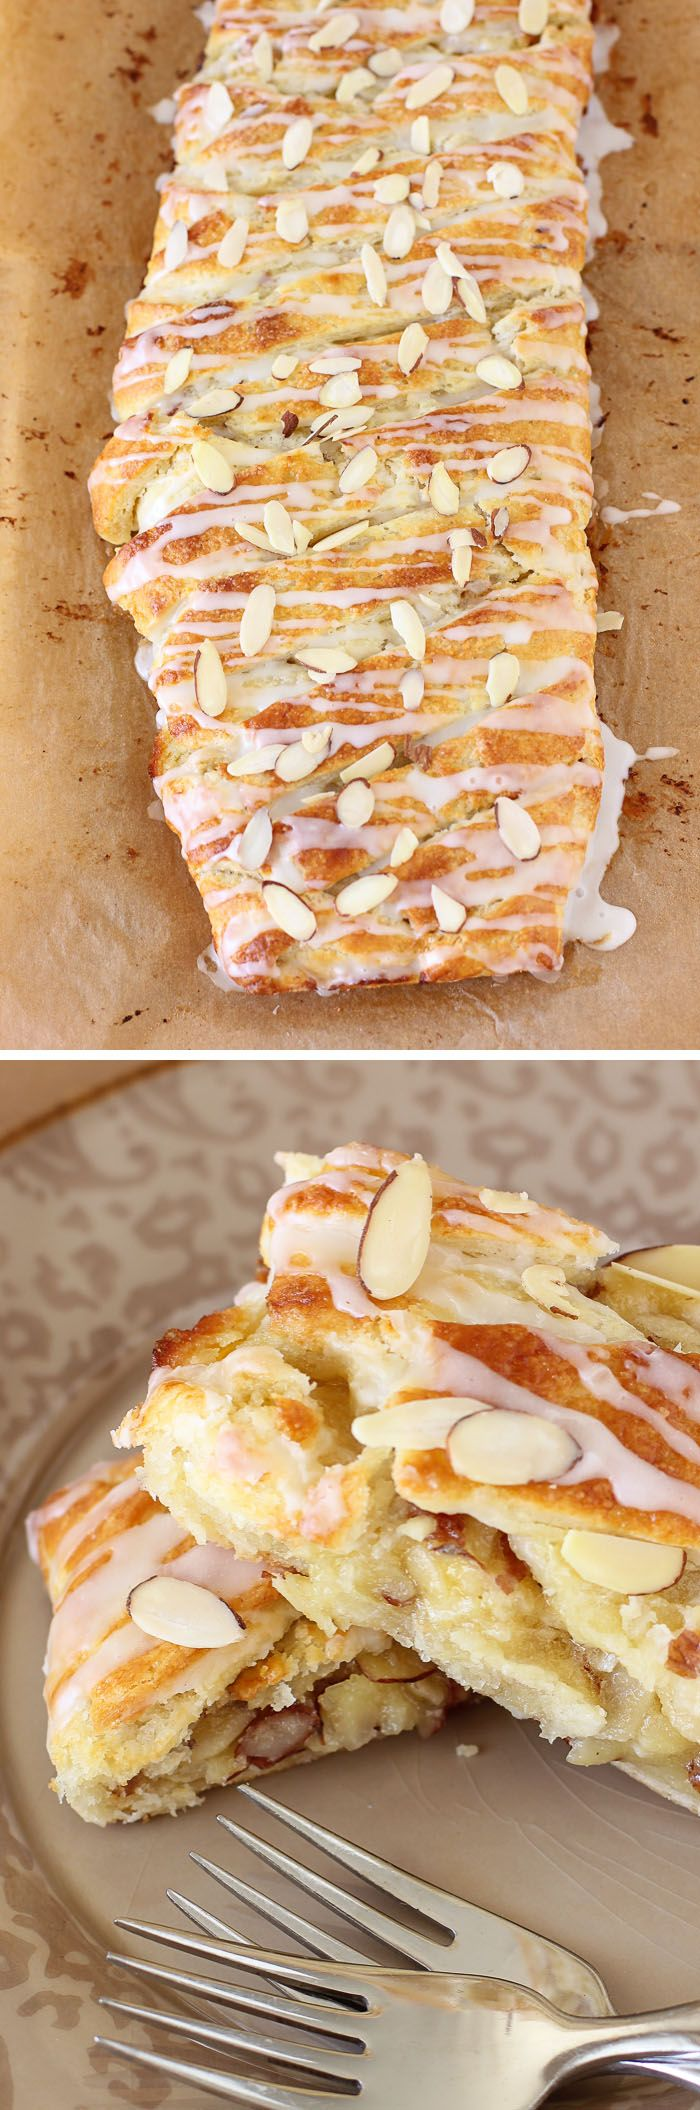 Buttery Almond Pastry Braid - If you love almond - almond pastries, almond croissants - this simple recipe is perfect for you! Eat it for breakfast or dessert!